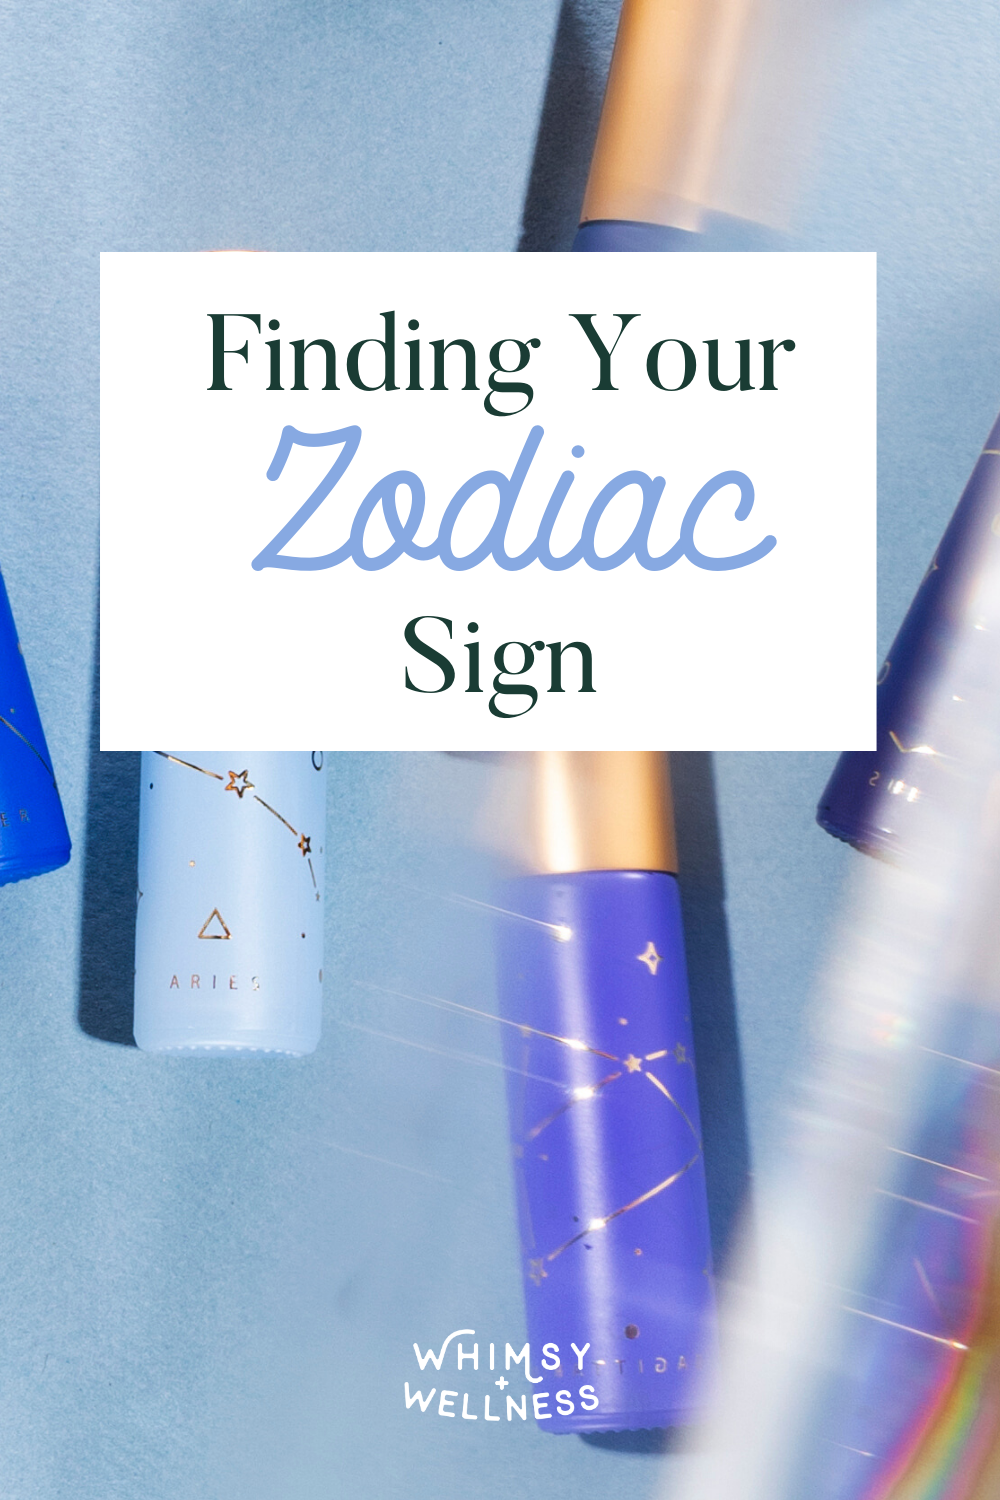 finding your zodiac sign with whimsy + wellness